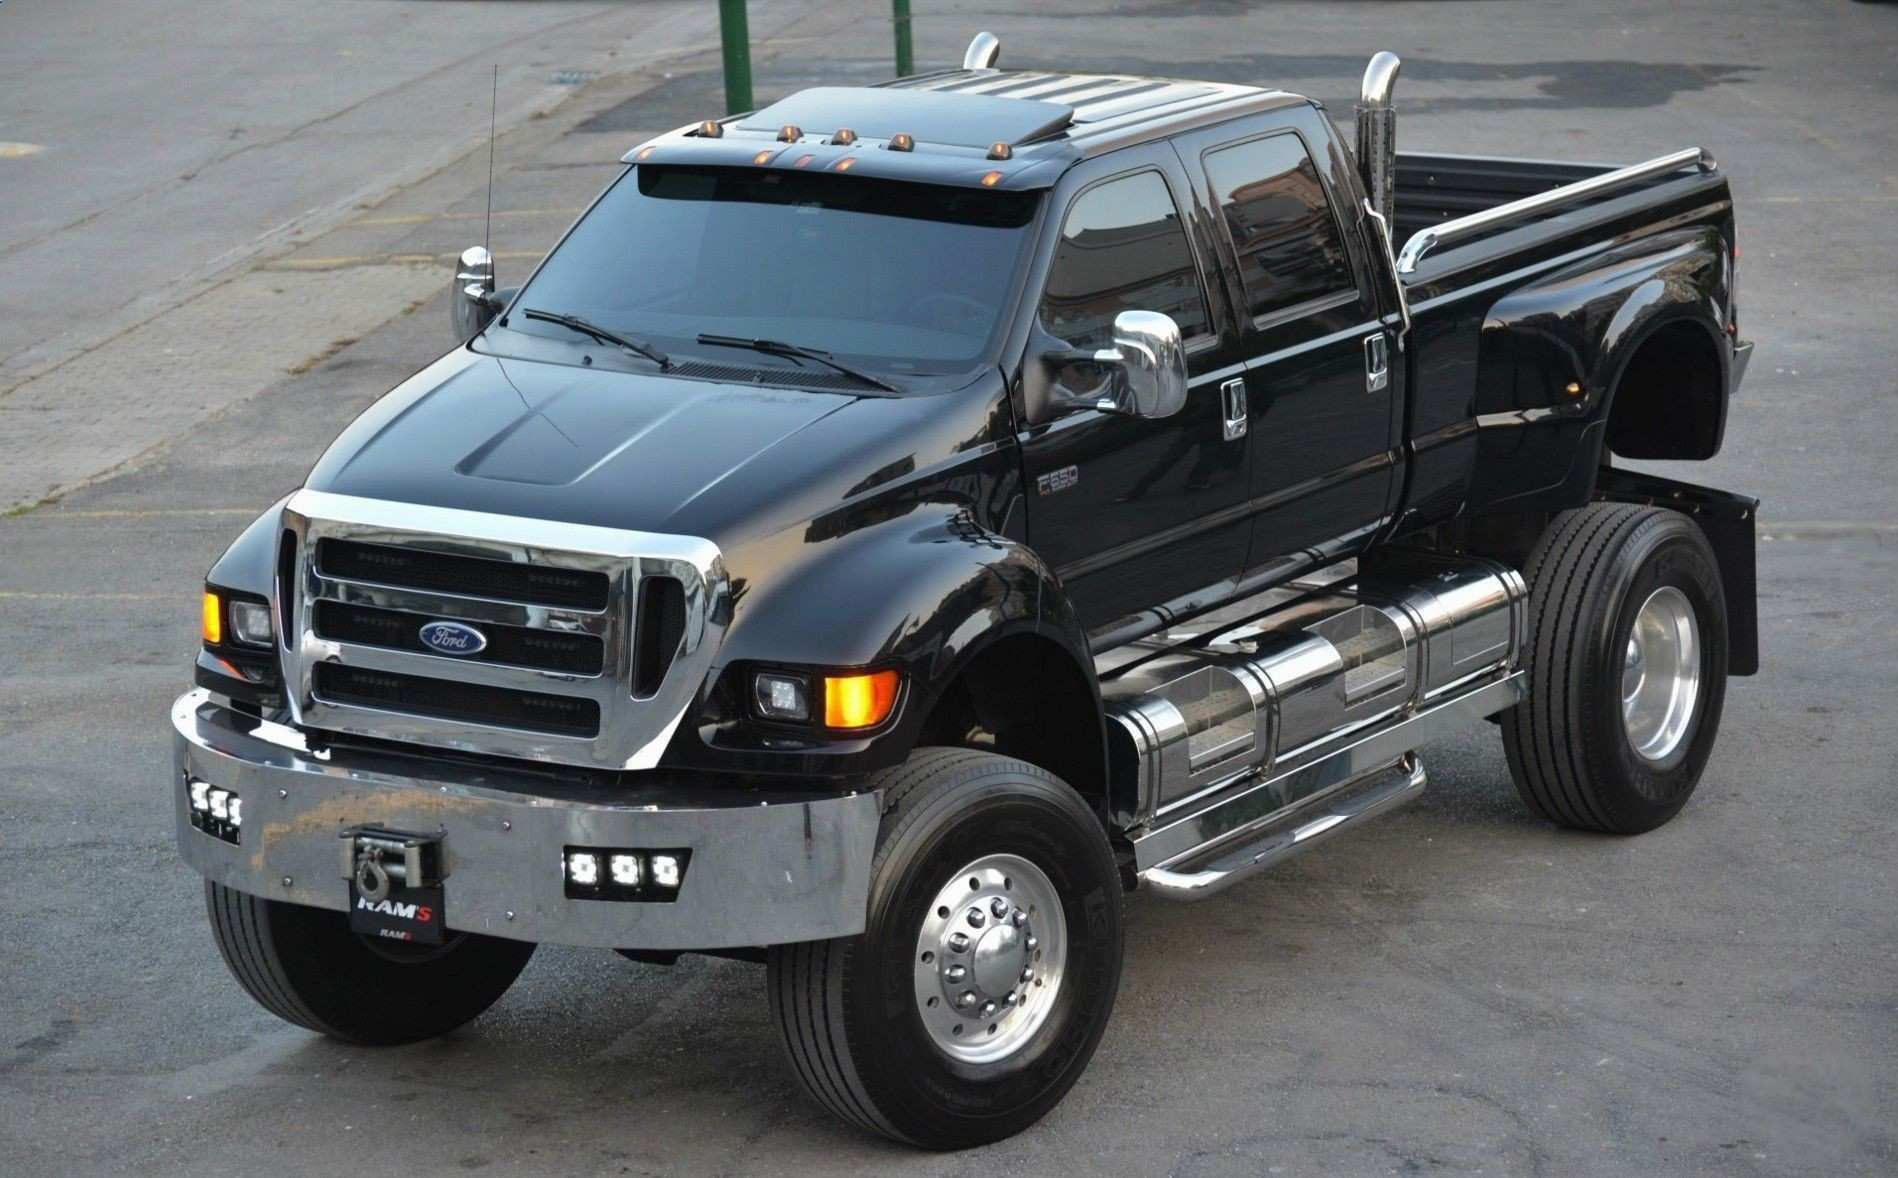 21 All New 2020 Ford F650 New Concept with 2020 Ford F650